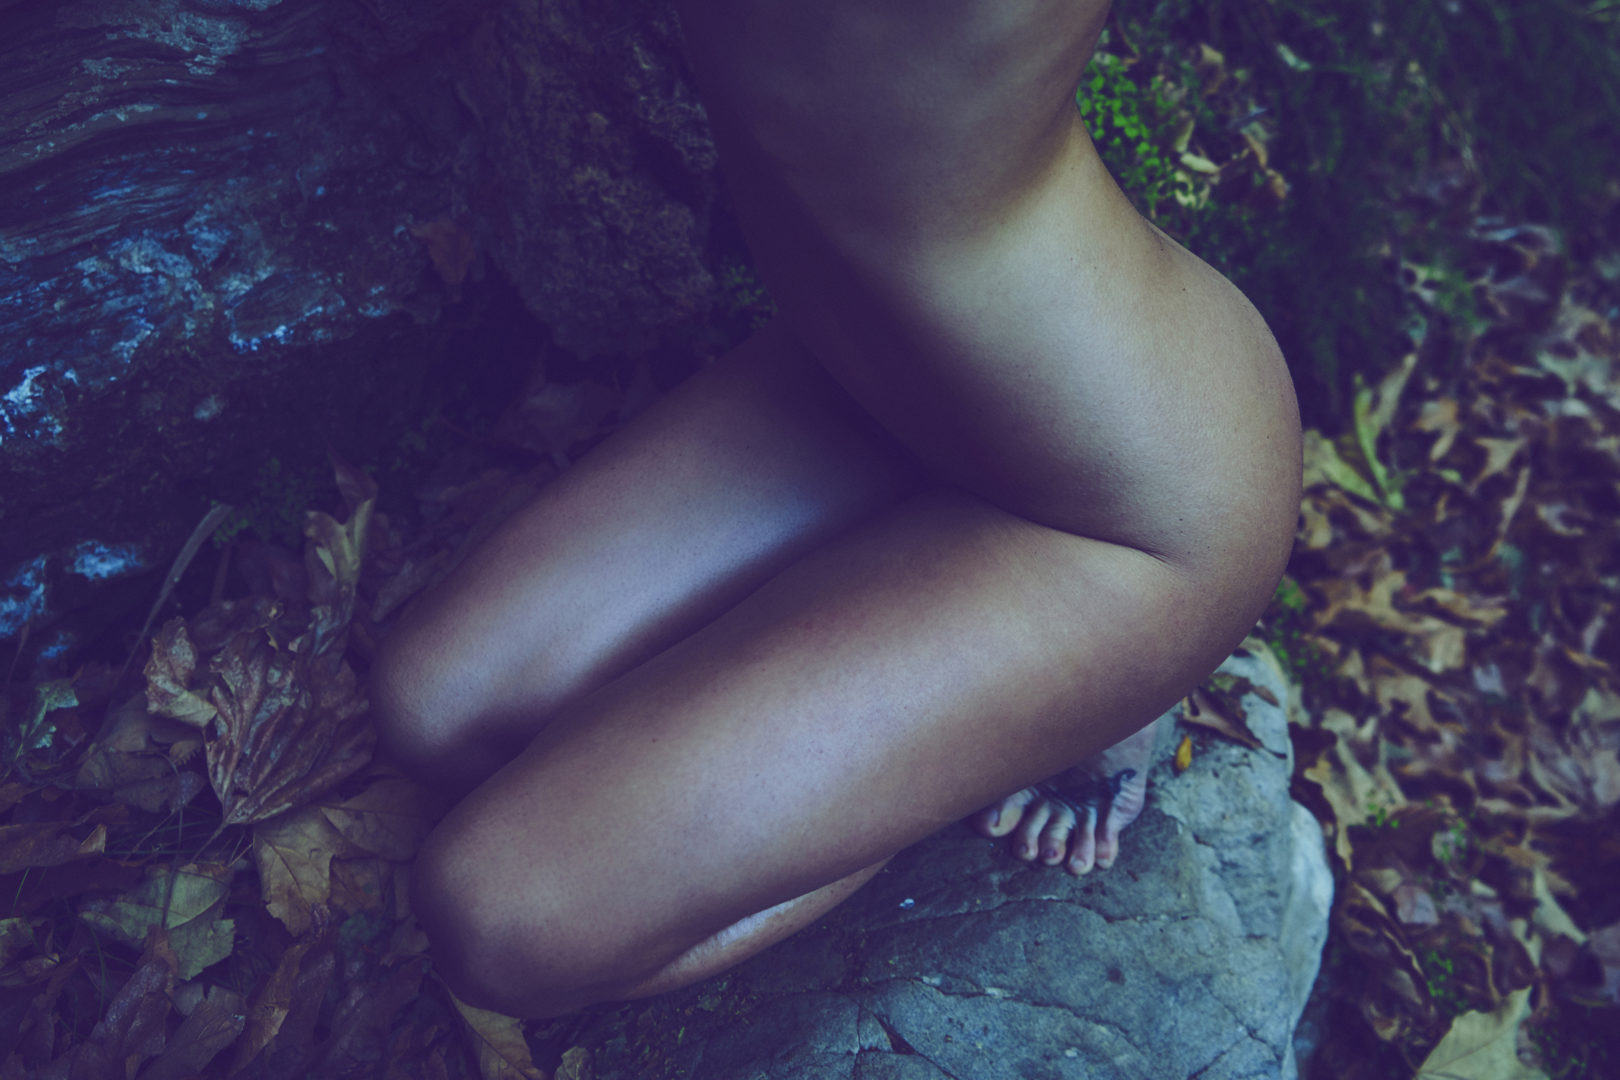 naked girl in nature